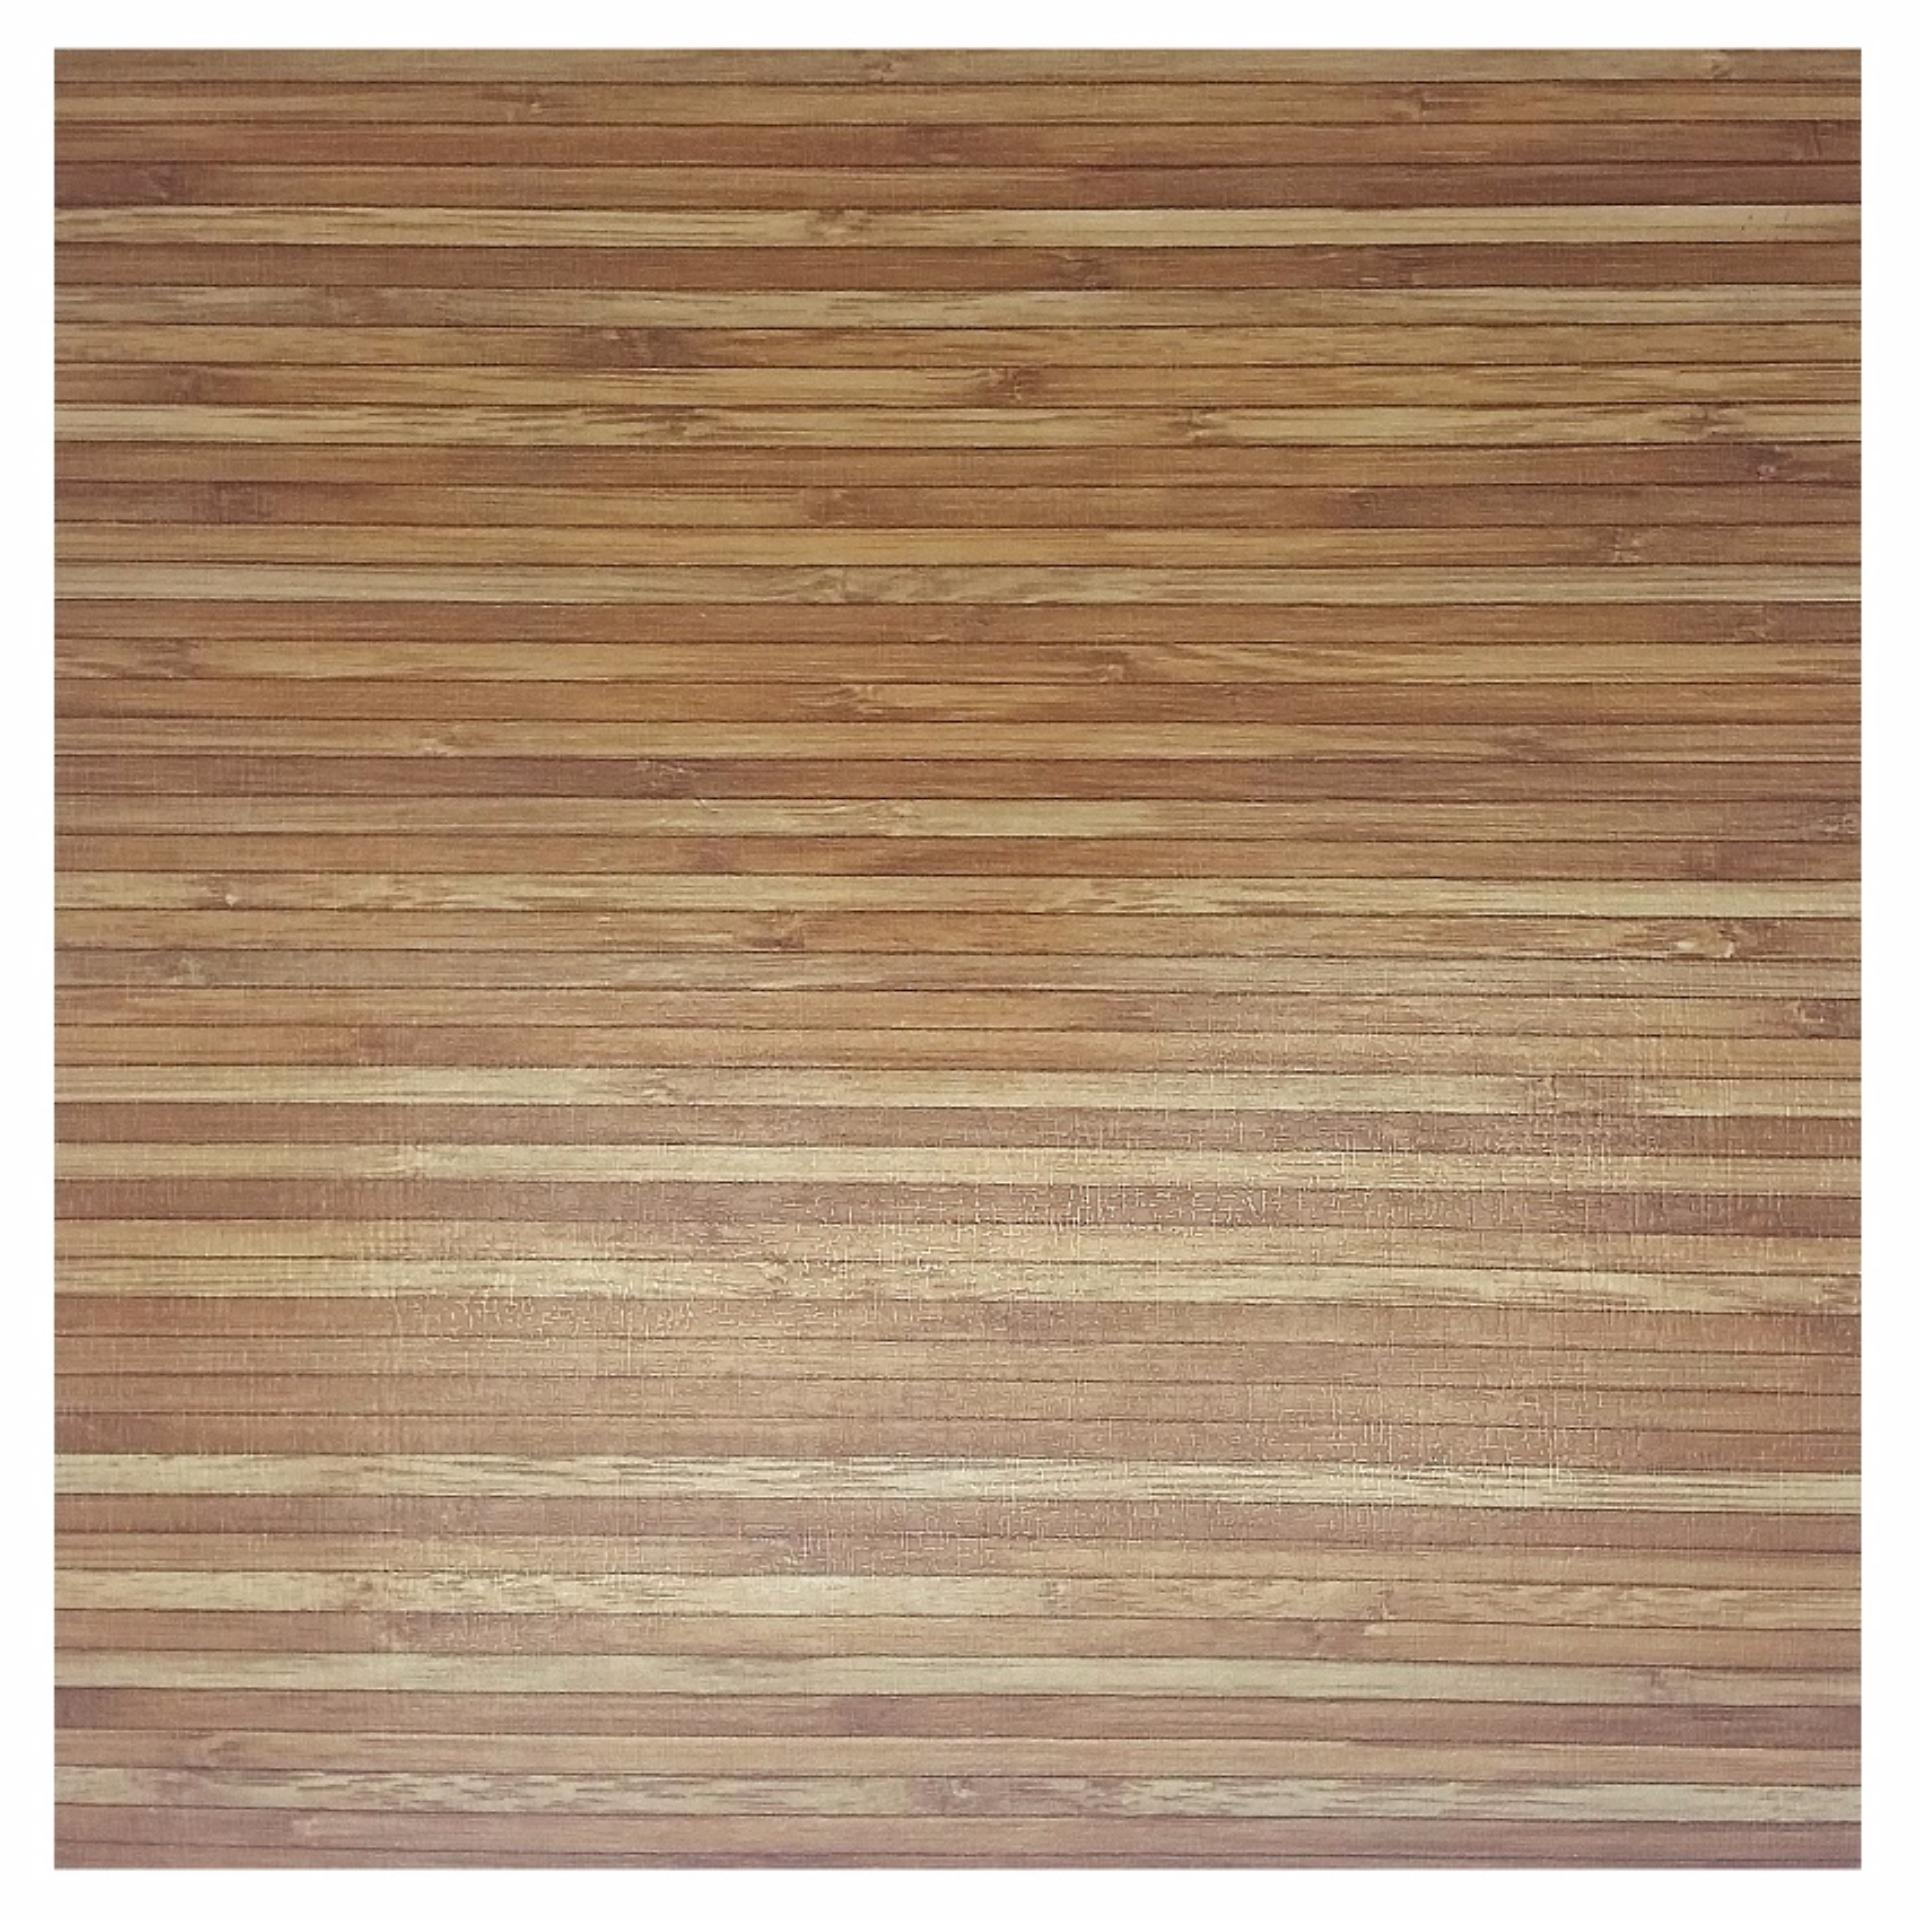 Vinyl tiles for sale vinyl flooring prices brands review in uni luxury vinyl tile flooring wooden thin stripes 180pcs promo dailygadgetfo Image collections